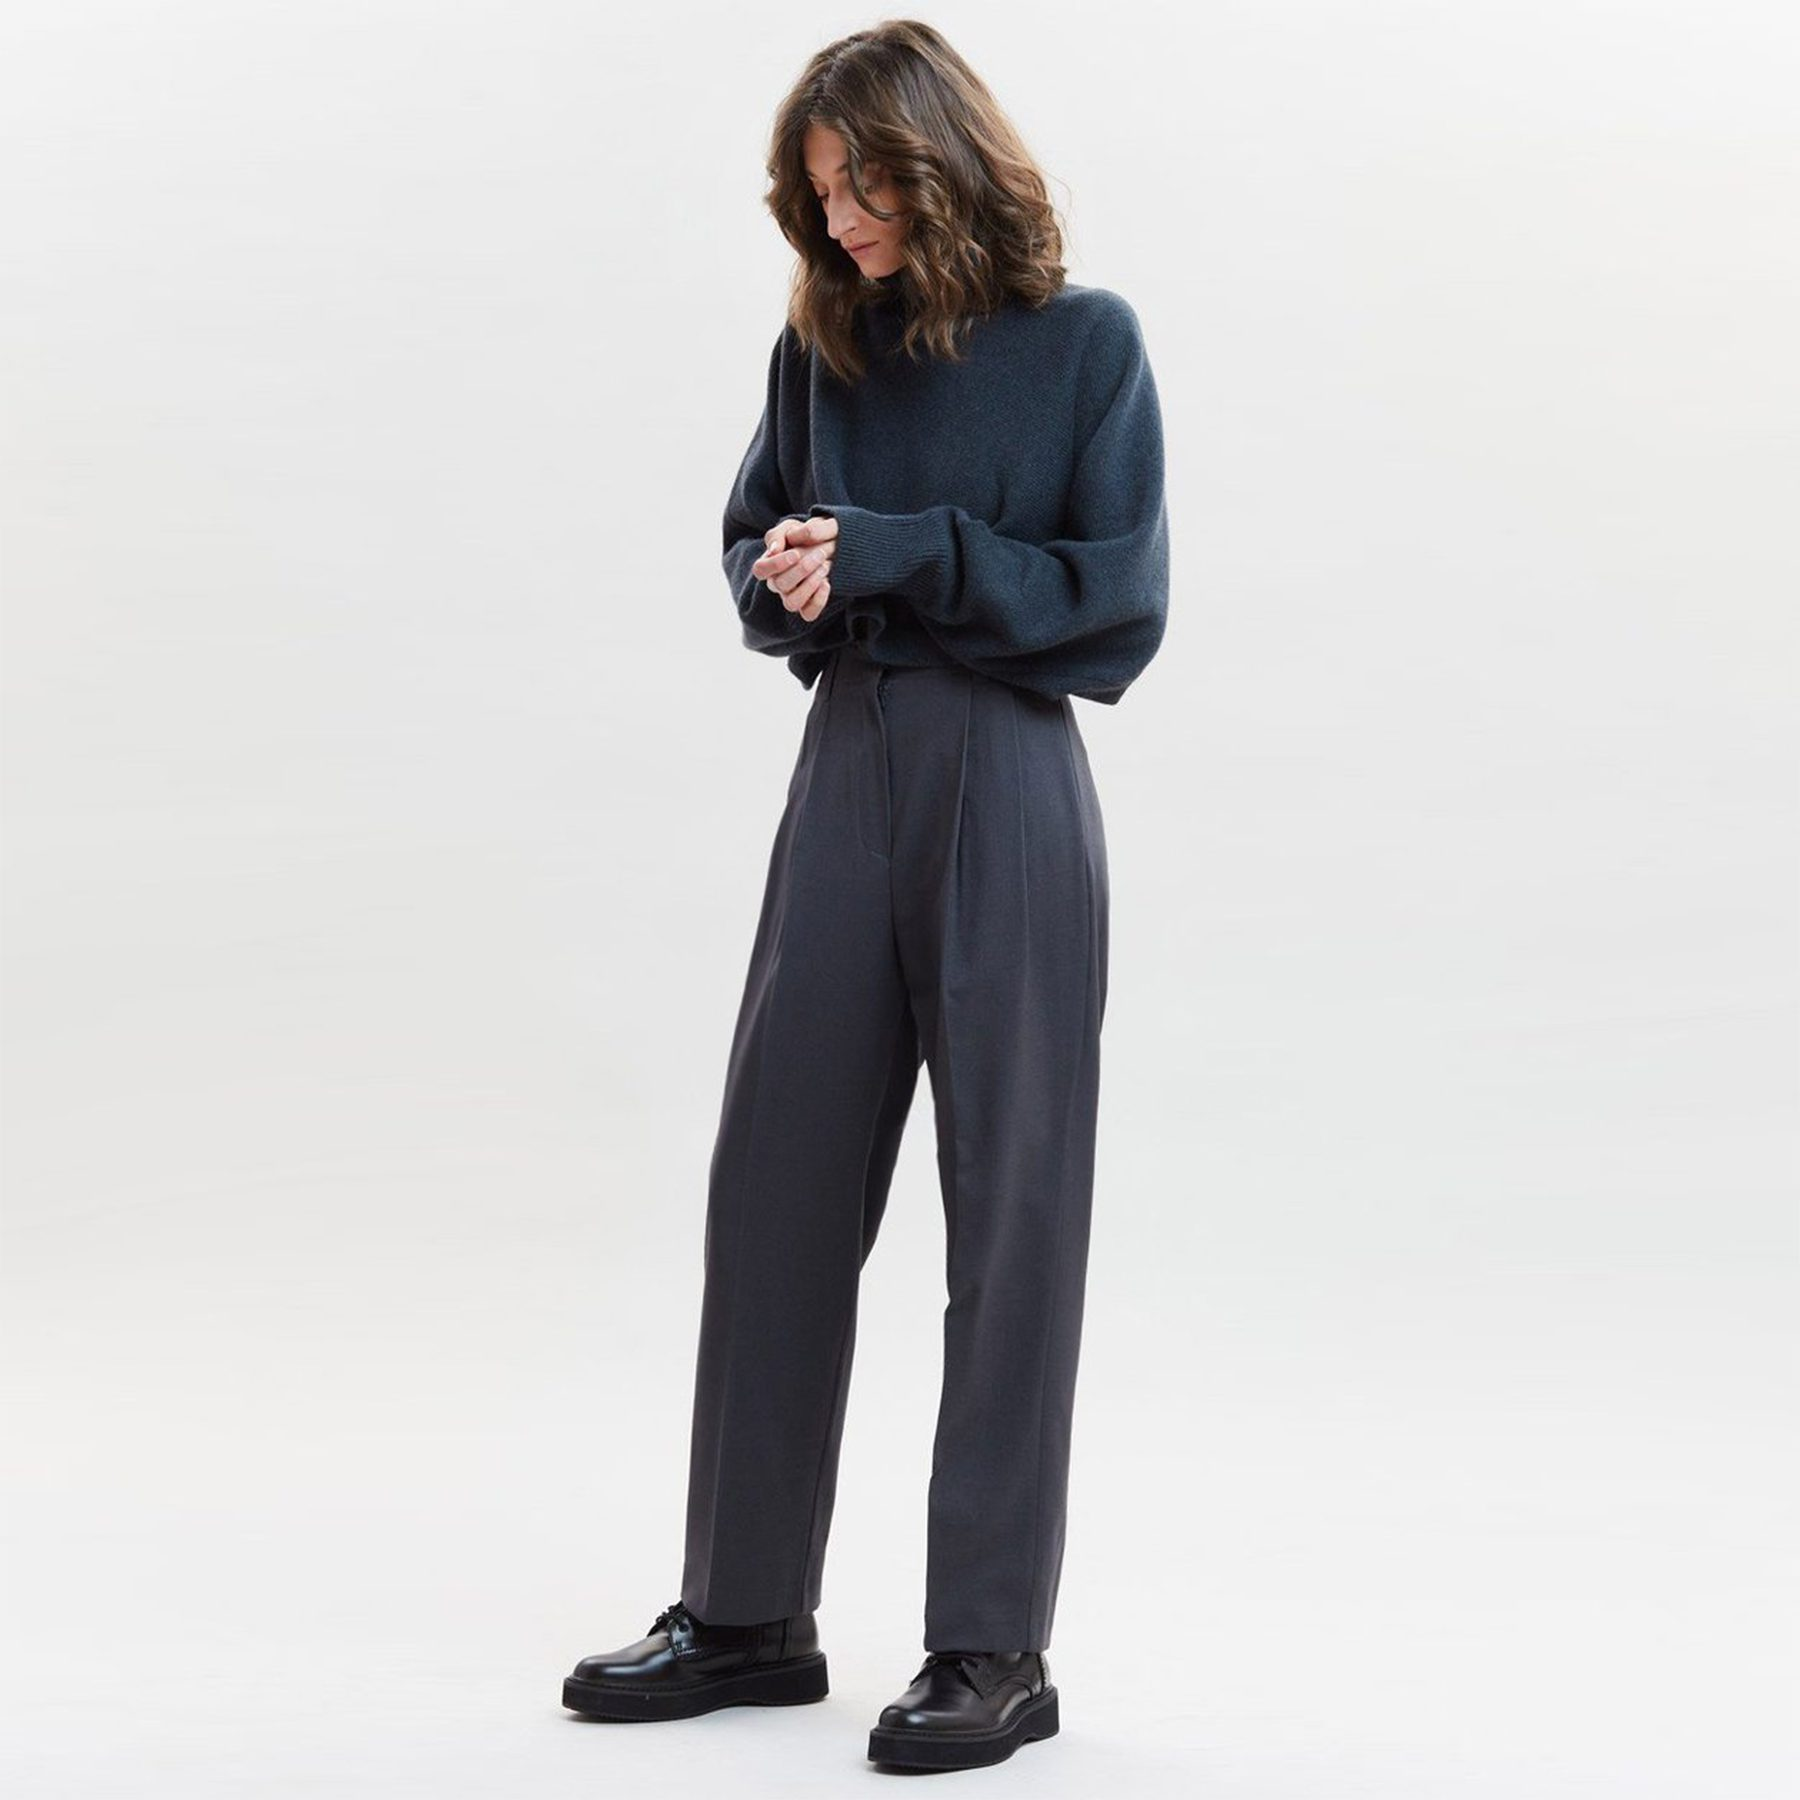 The Frankie Shop Straight Belted Pleat Pants